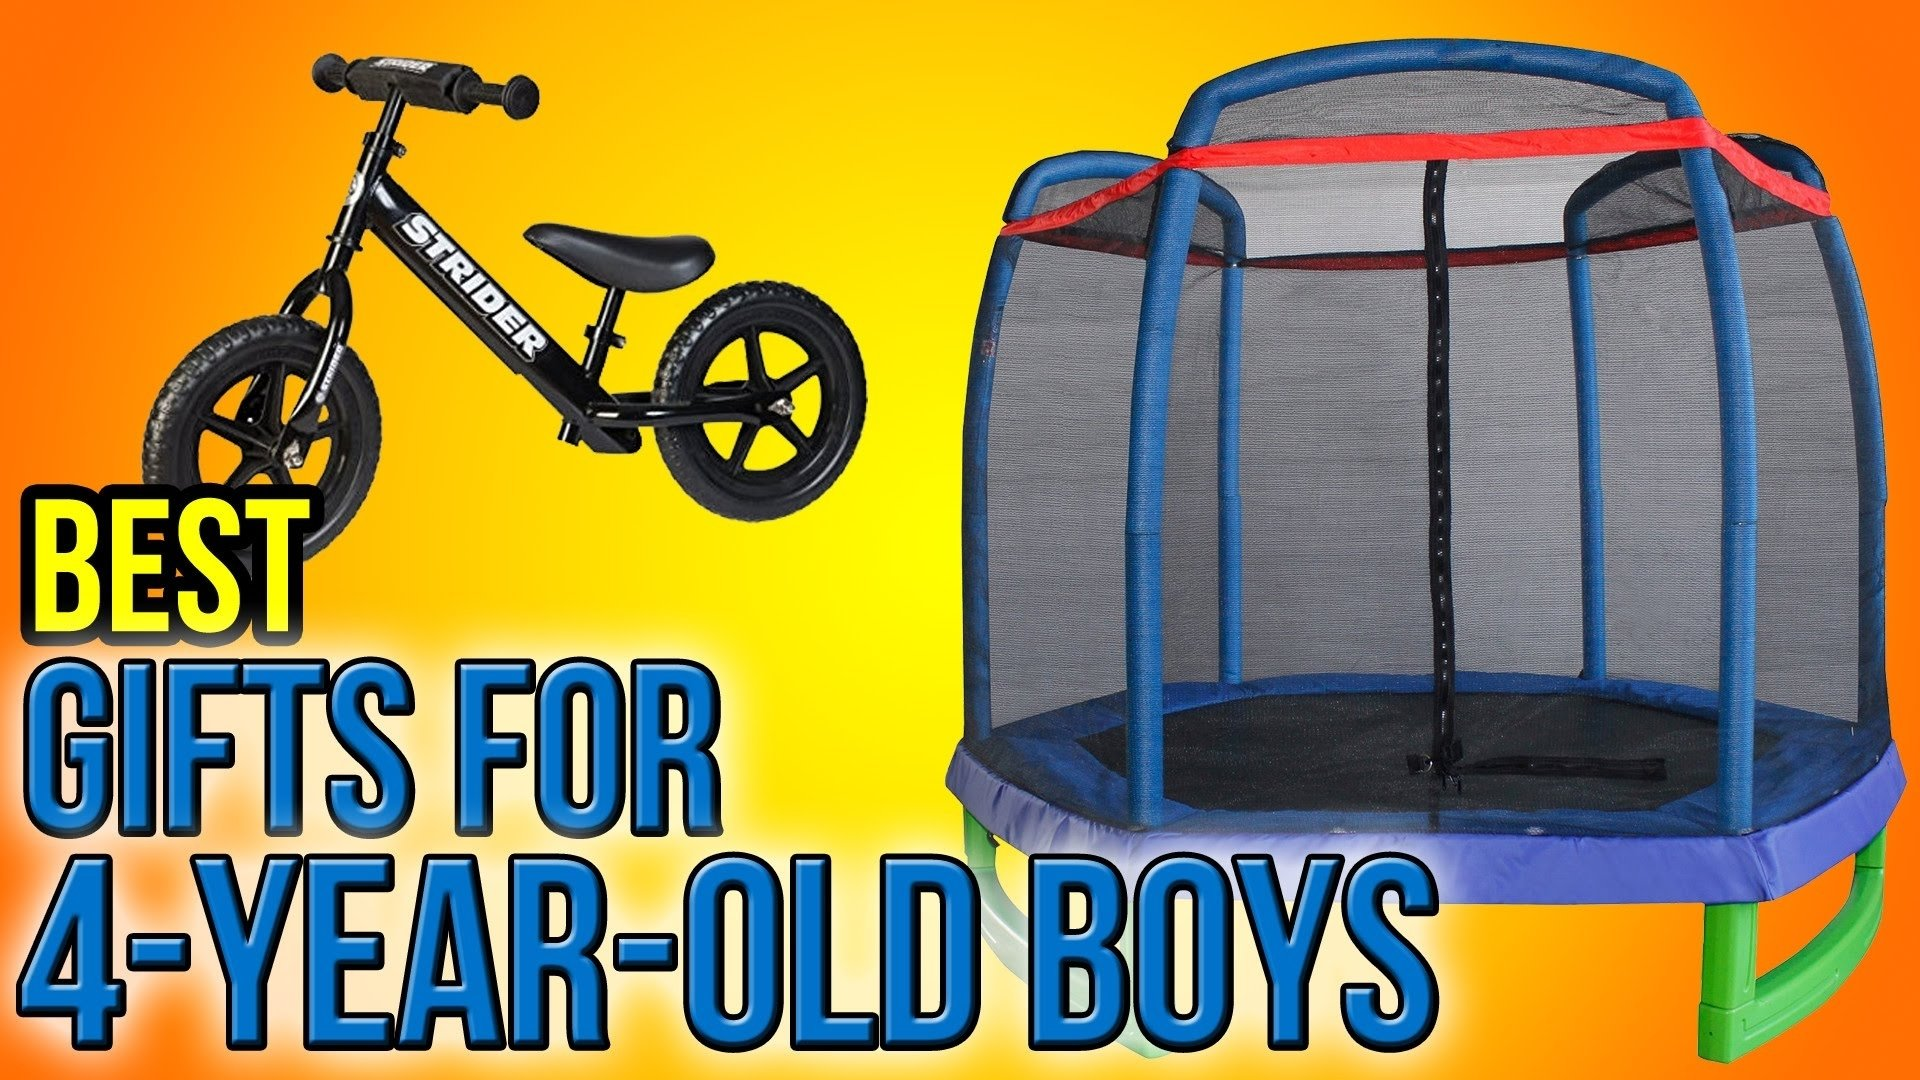 10 Amazing Gift Idea For 4 Year Old Boy 10 best gifts for 4 year old boys 2016 youtube 2 2020